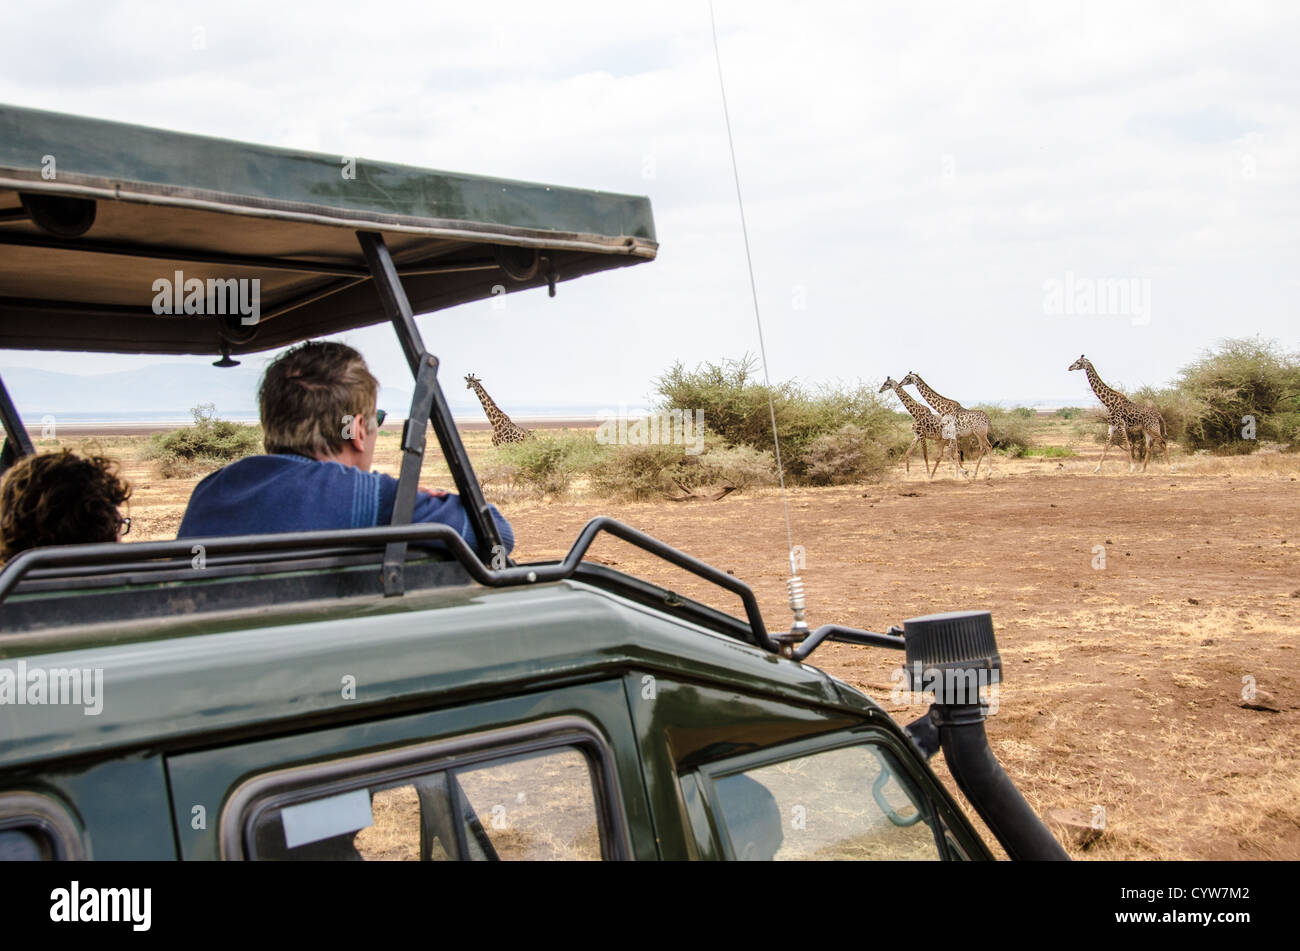 LAKE MANYARA NATIONAL PARK, Tanzania - Tourists in a pop-up top safari vehicle watch a group of giraffes walking - Stock Image